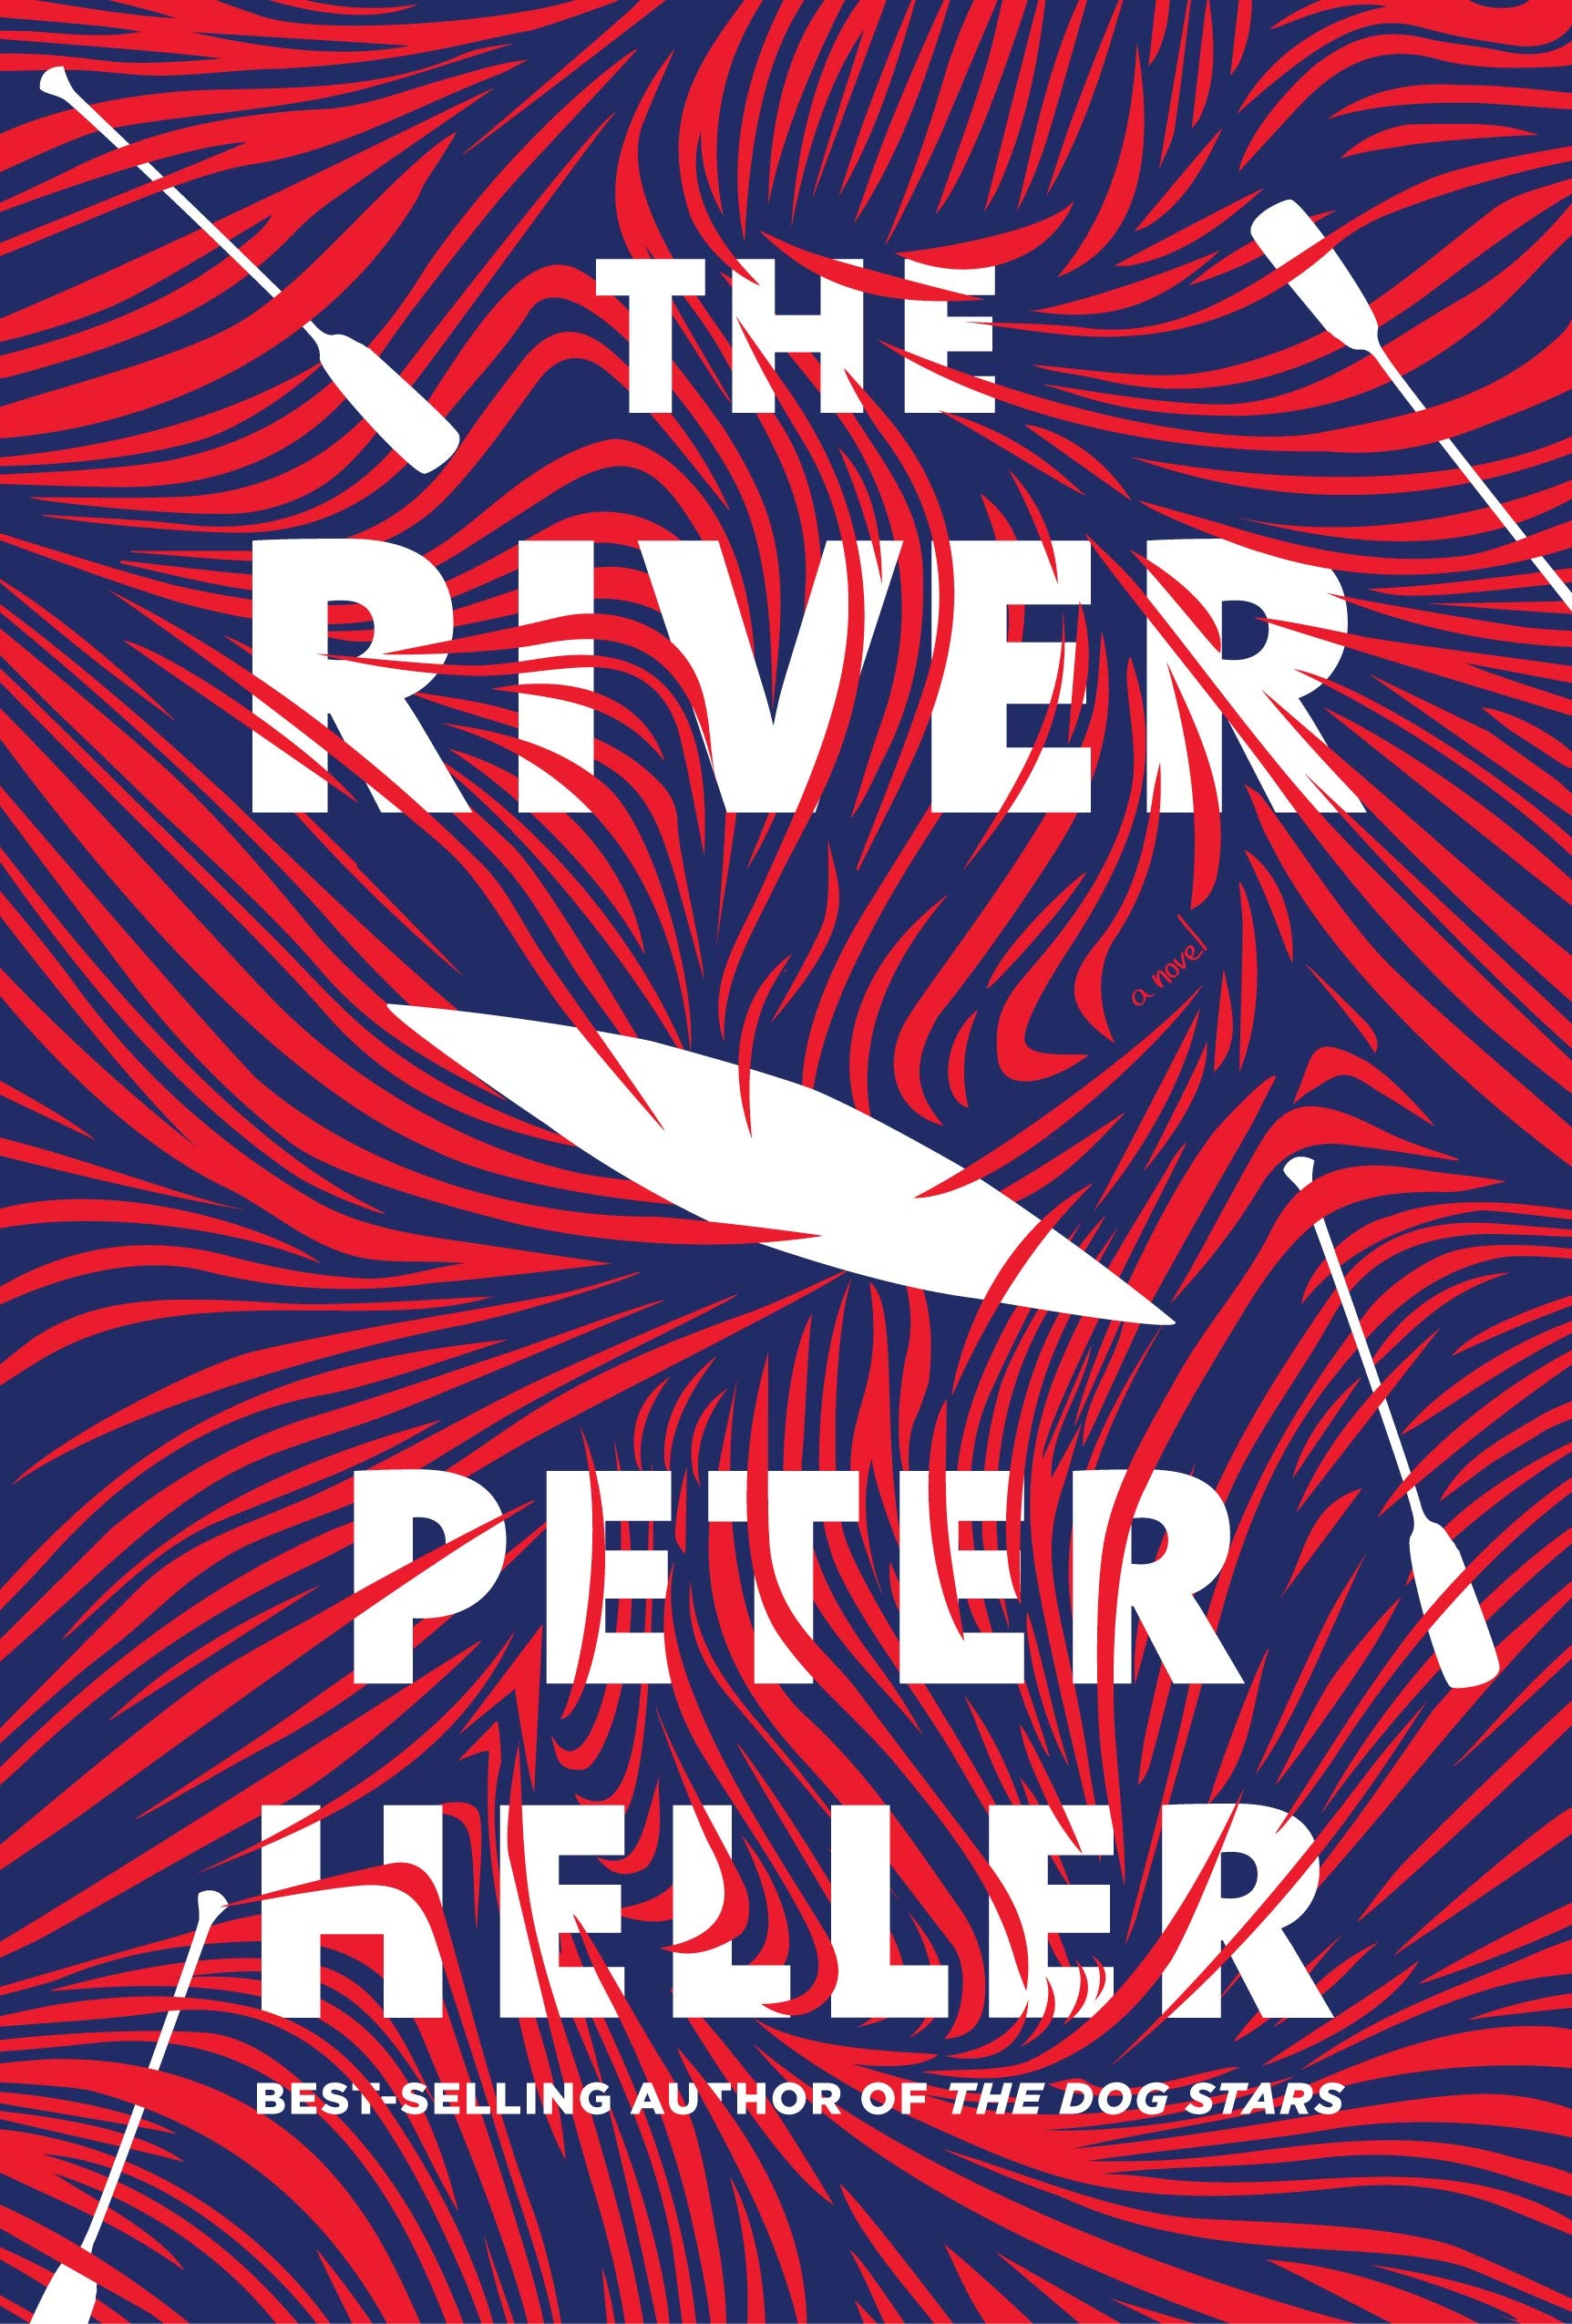 From the best-selling author of  The Dog Stars,  the story of two college students on a wilderness canoe trip–a gripping tale of a friendship tested by fire, white water, and violence.